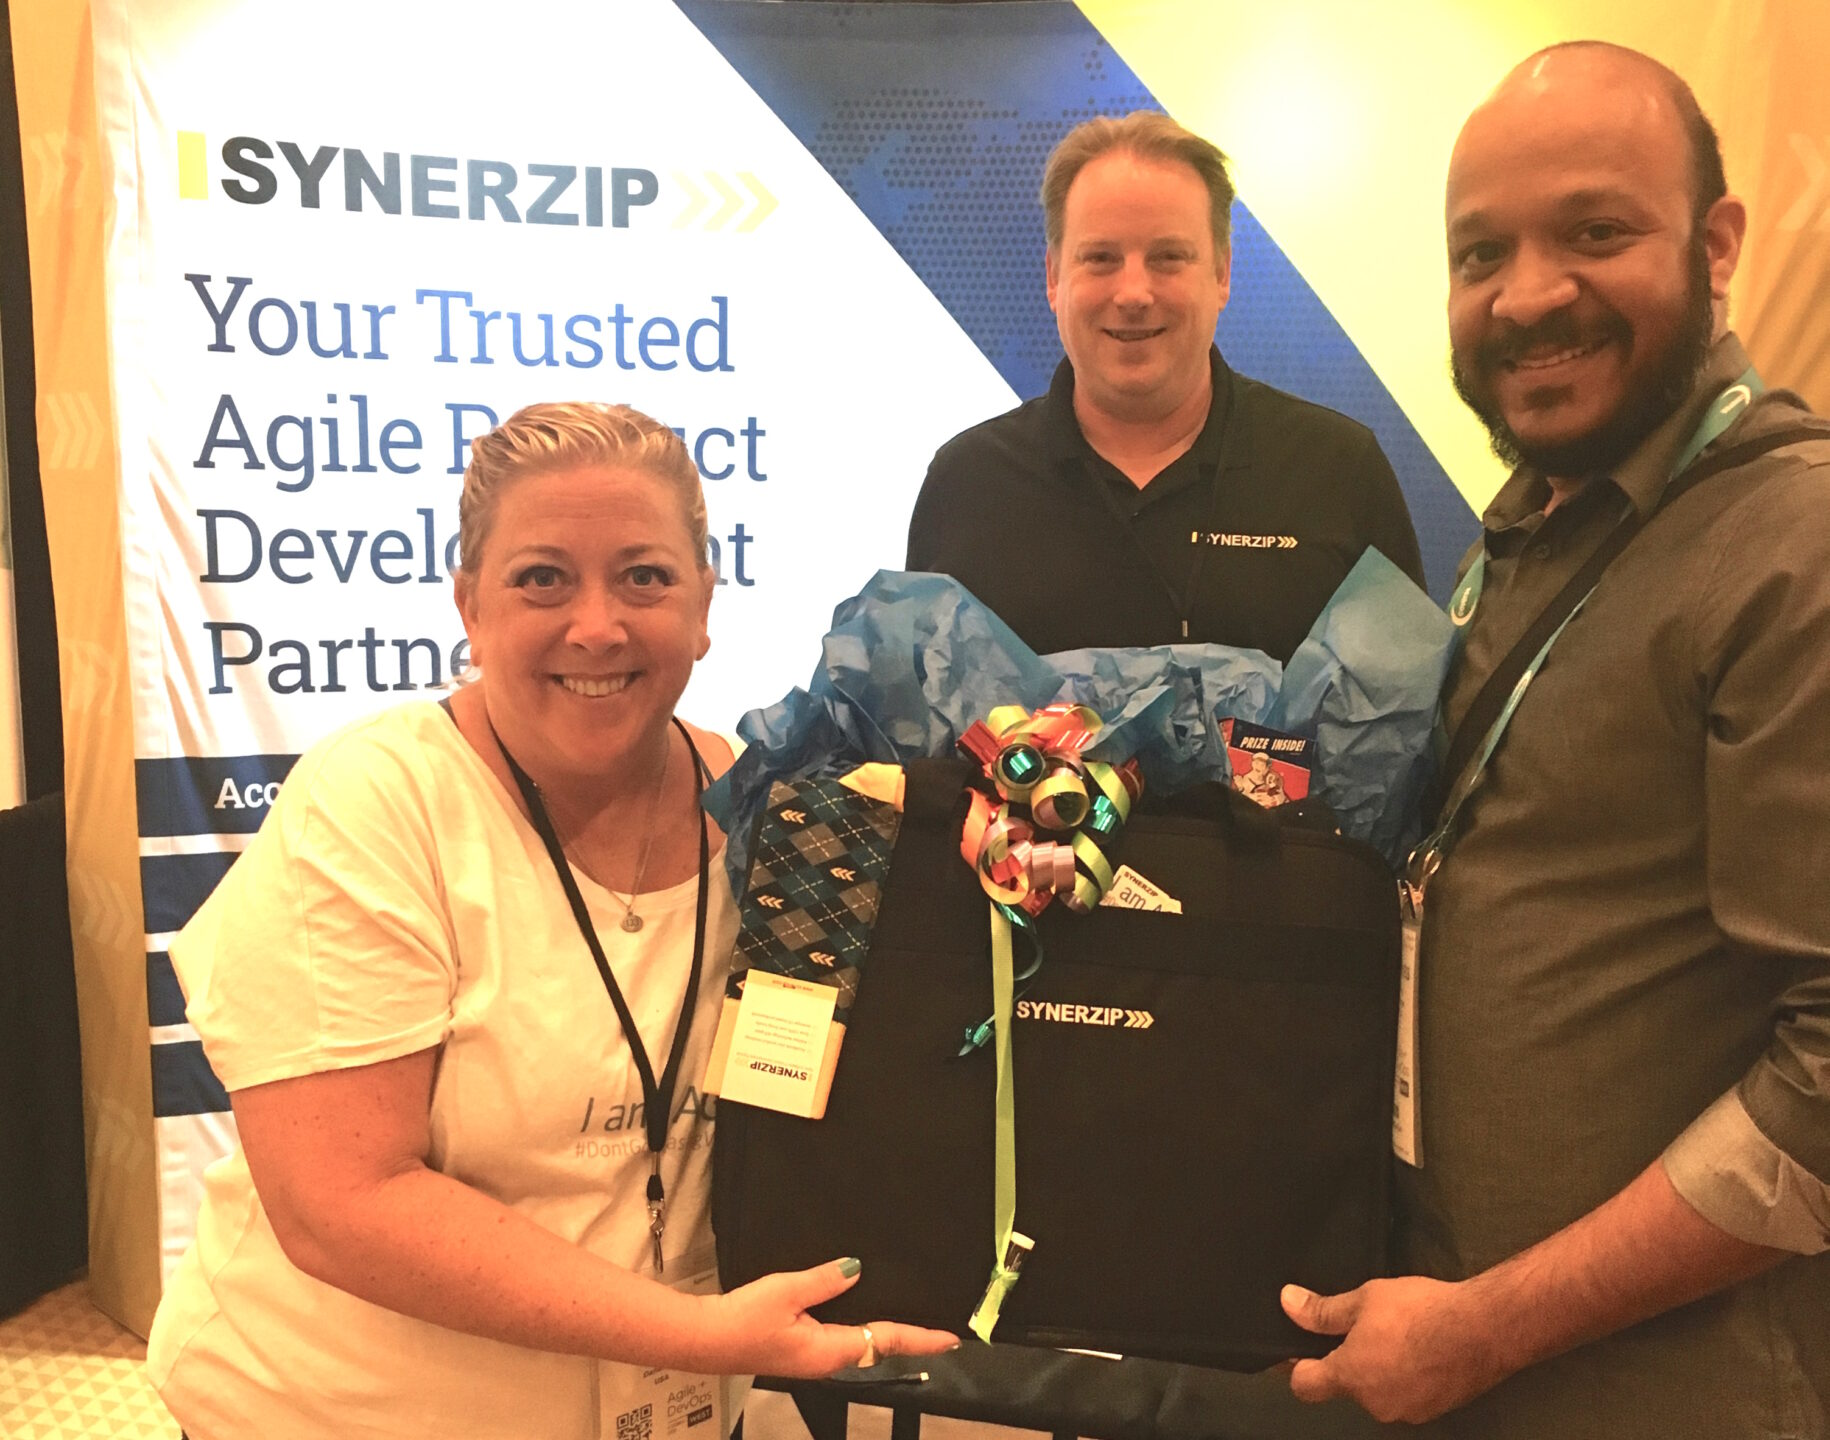 Synerzip Team at Techwell's Agile + DevOps West Post Conference 2019